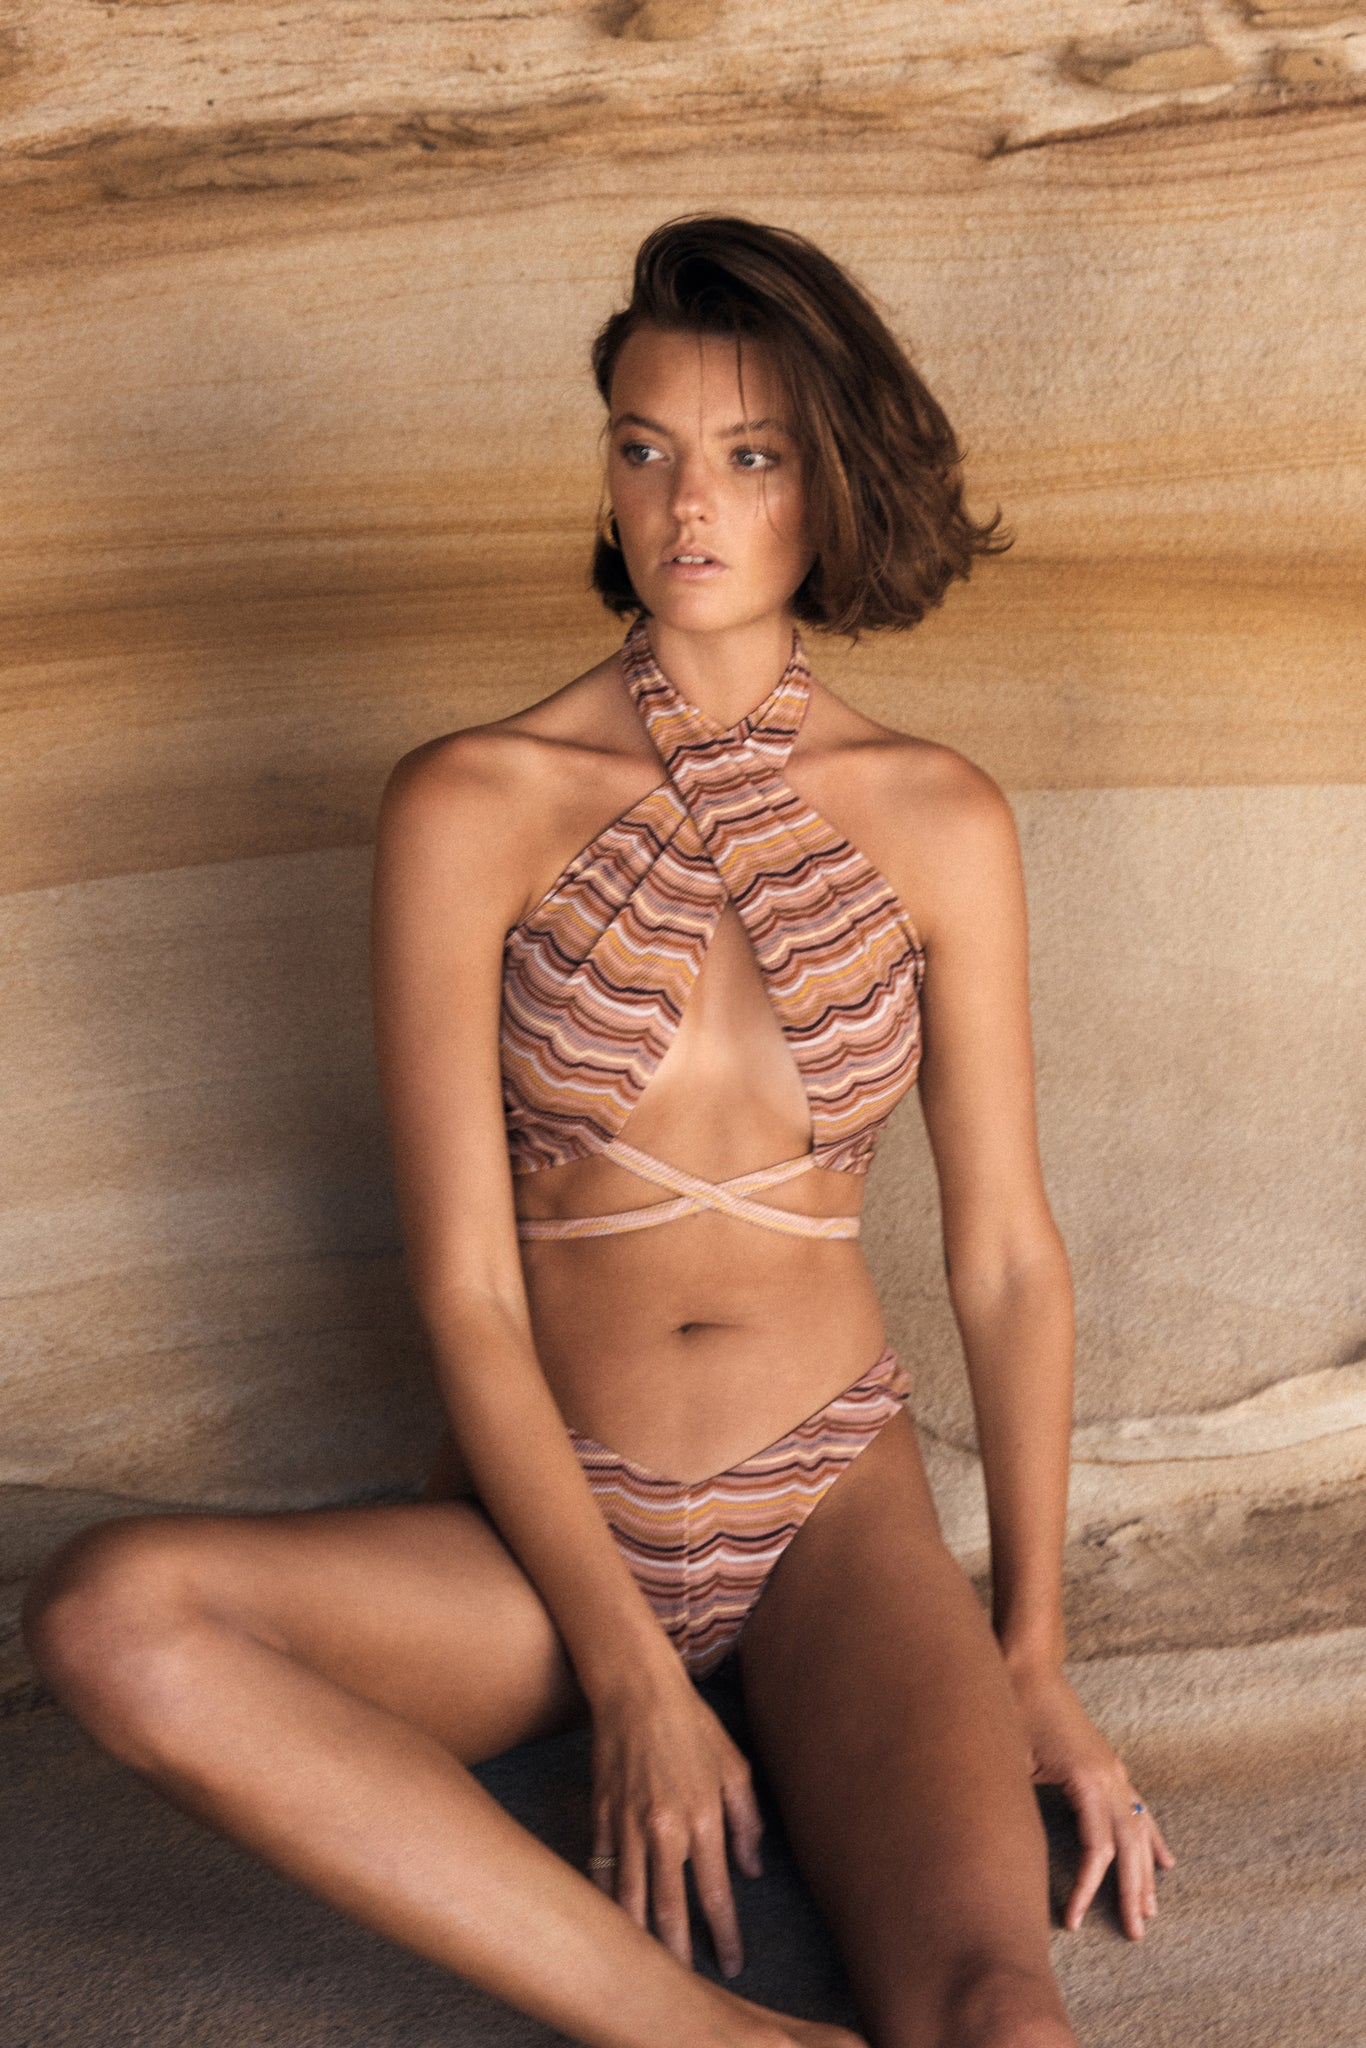 Lucian Top|lucian-top-ngrrgooroon-country-stripe,Chad Bottom|chad-bottom-ngrrgooroon-country-stripe